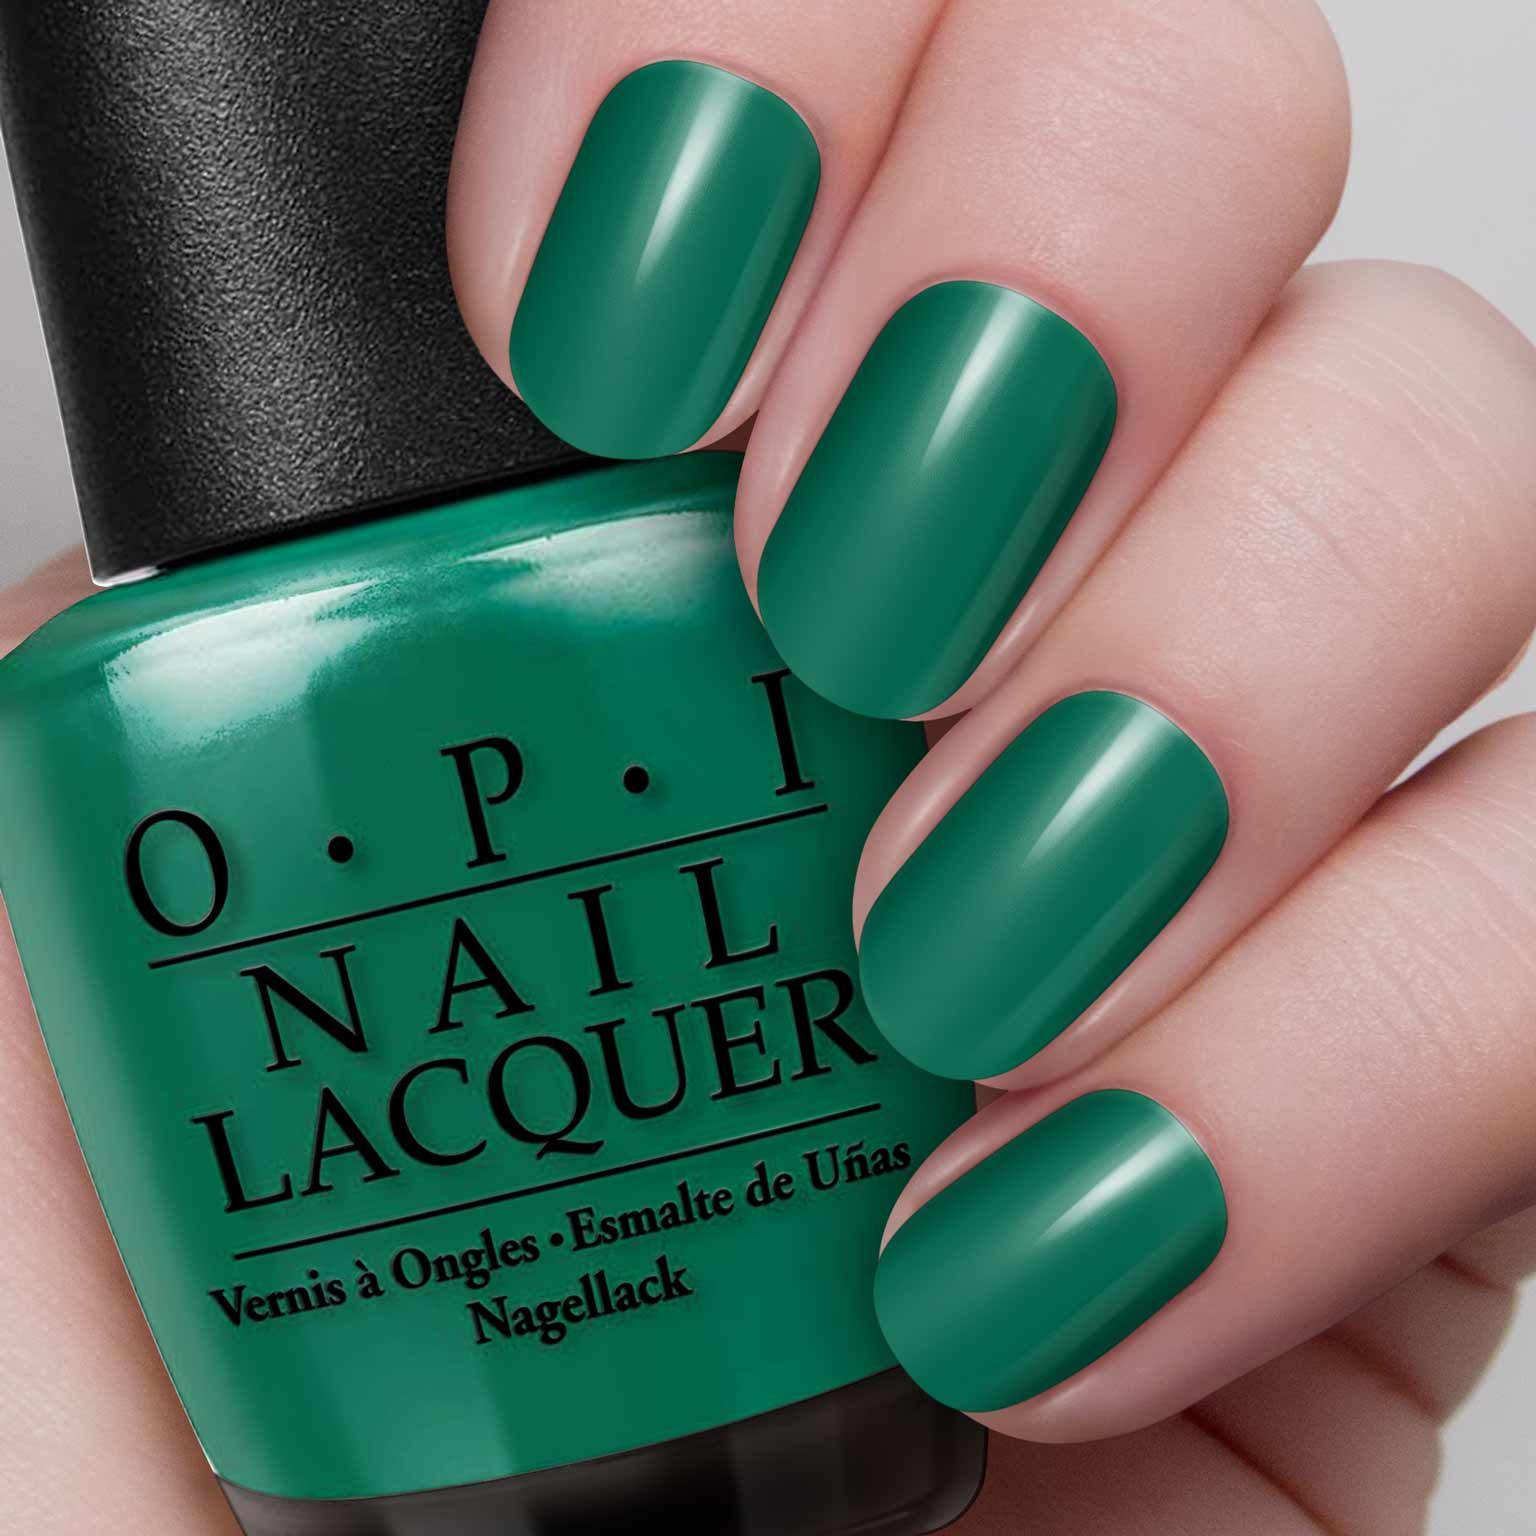 Nail Polish | OPI, Nail polish colors and Manicure